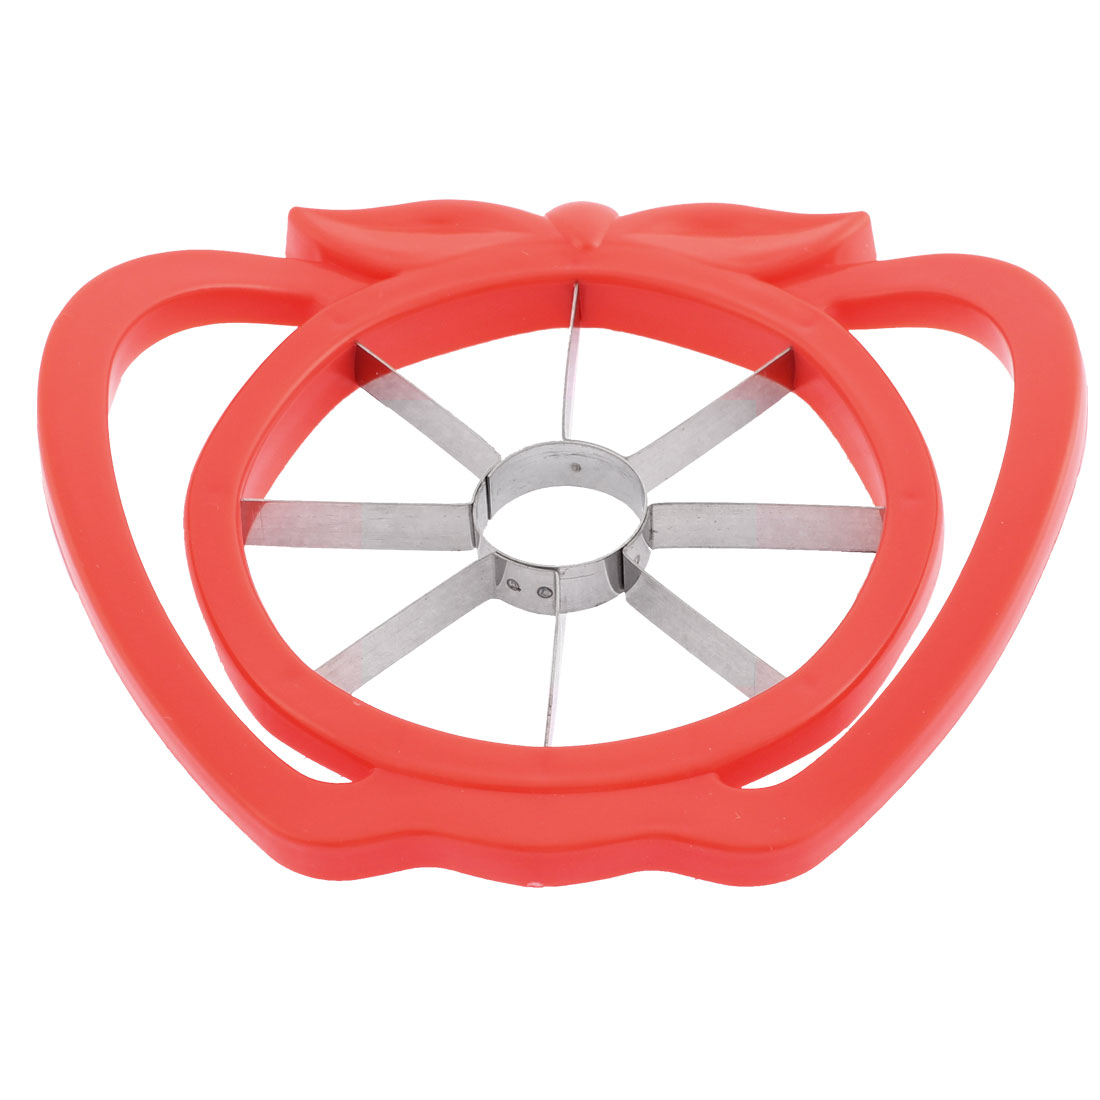 Home Handy Apple Pear Corer Slicer Cutter Fruit Peeler Divider Gadget Red